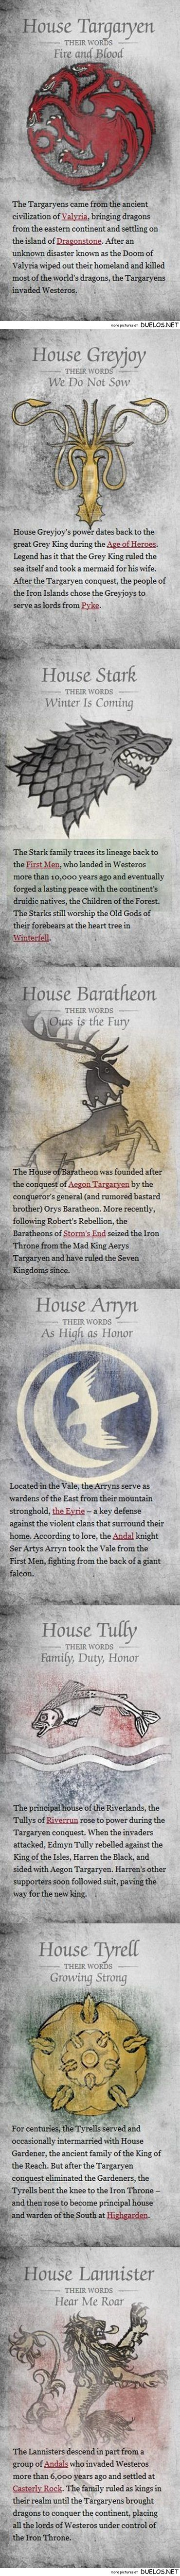 25 Reasons to Watch Game of Thrones History of houses of Game of Thrones - we post these as posters around house! OR we have a station for each major house with food and drink they would have!